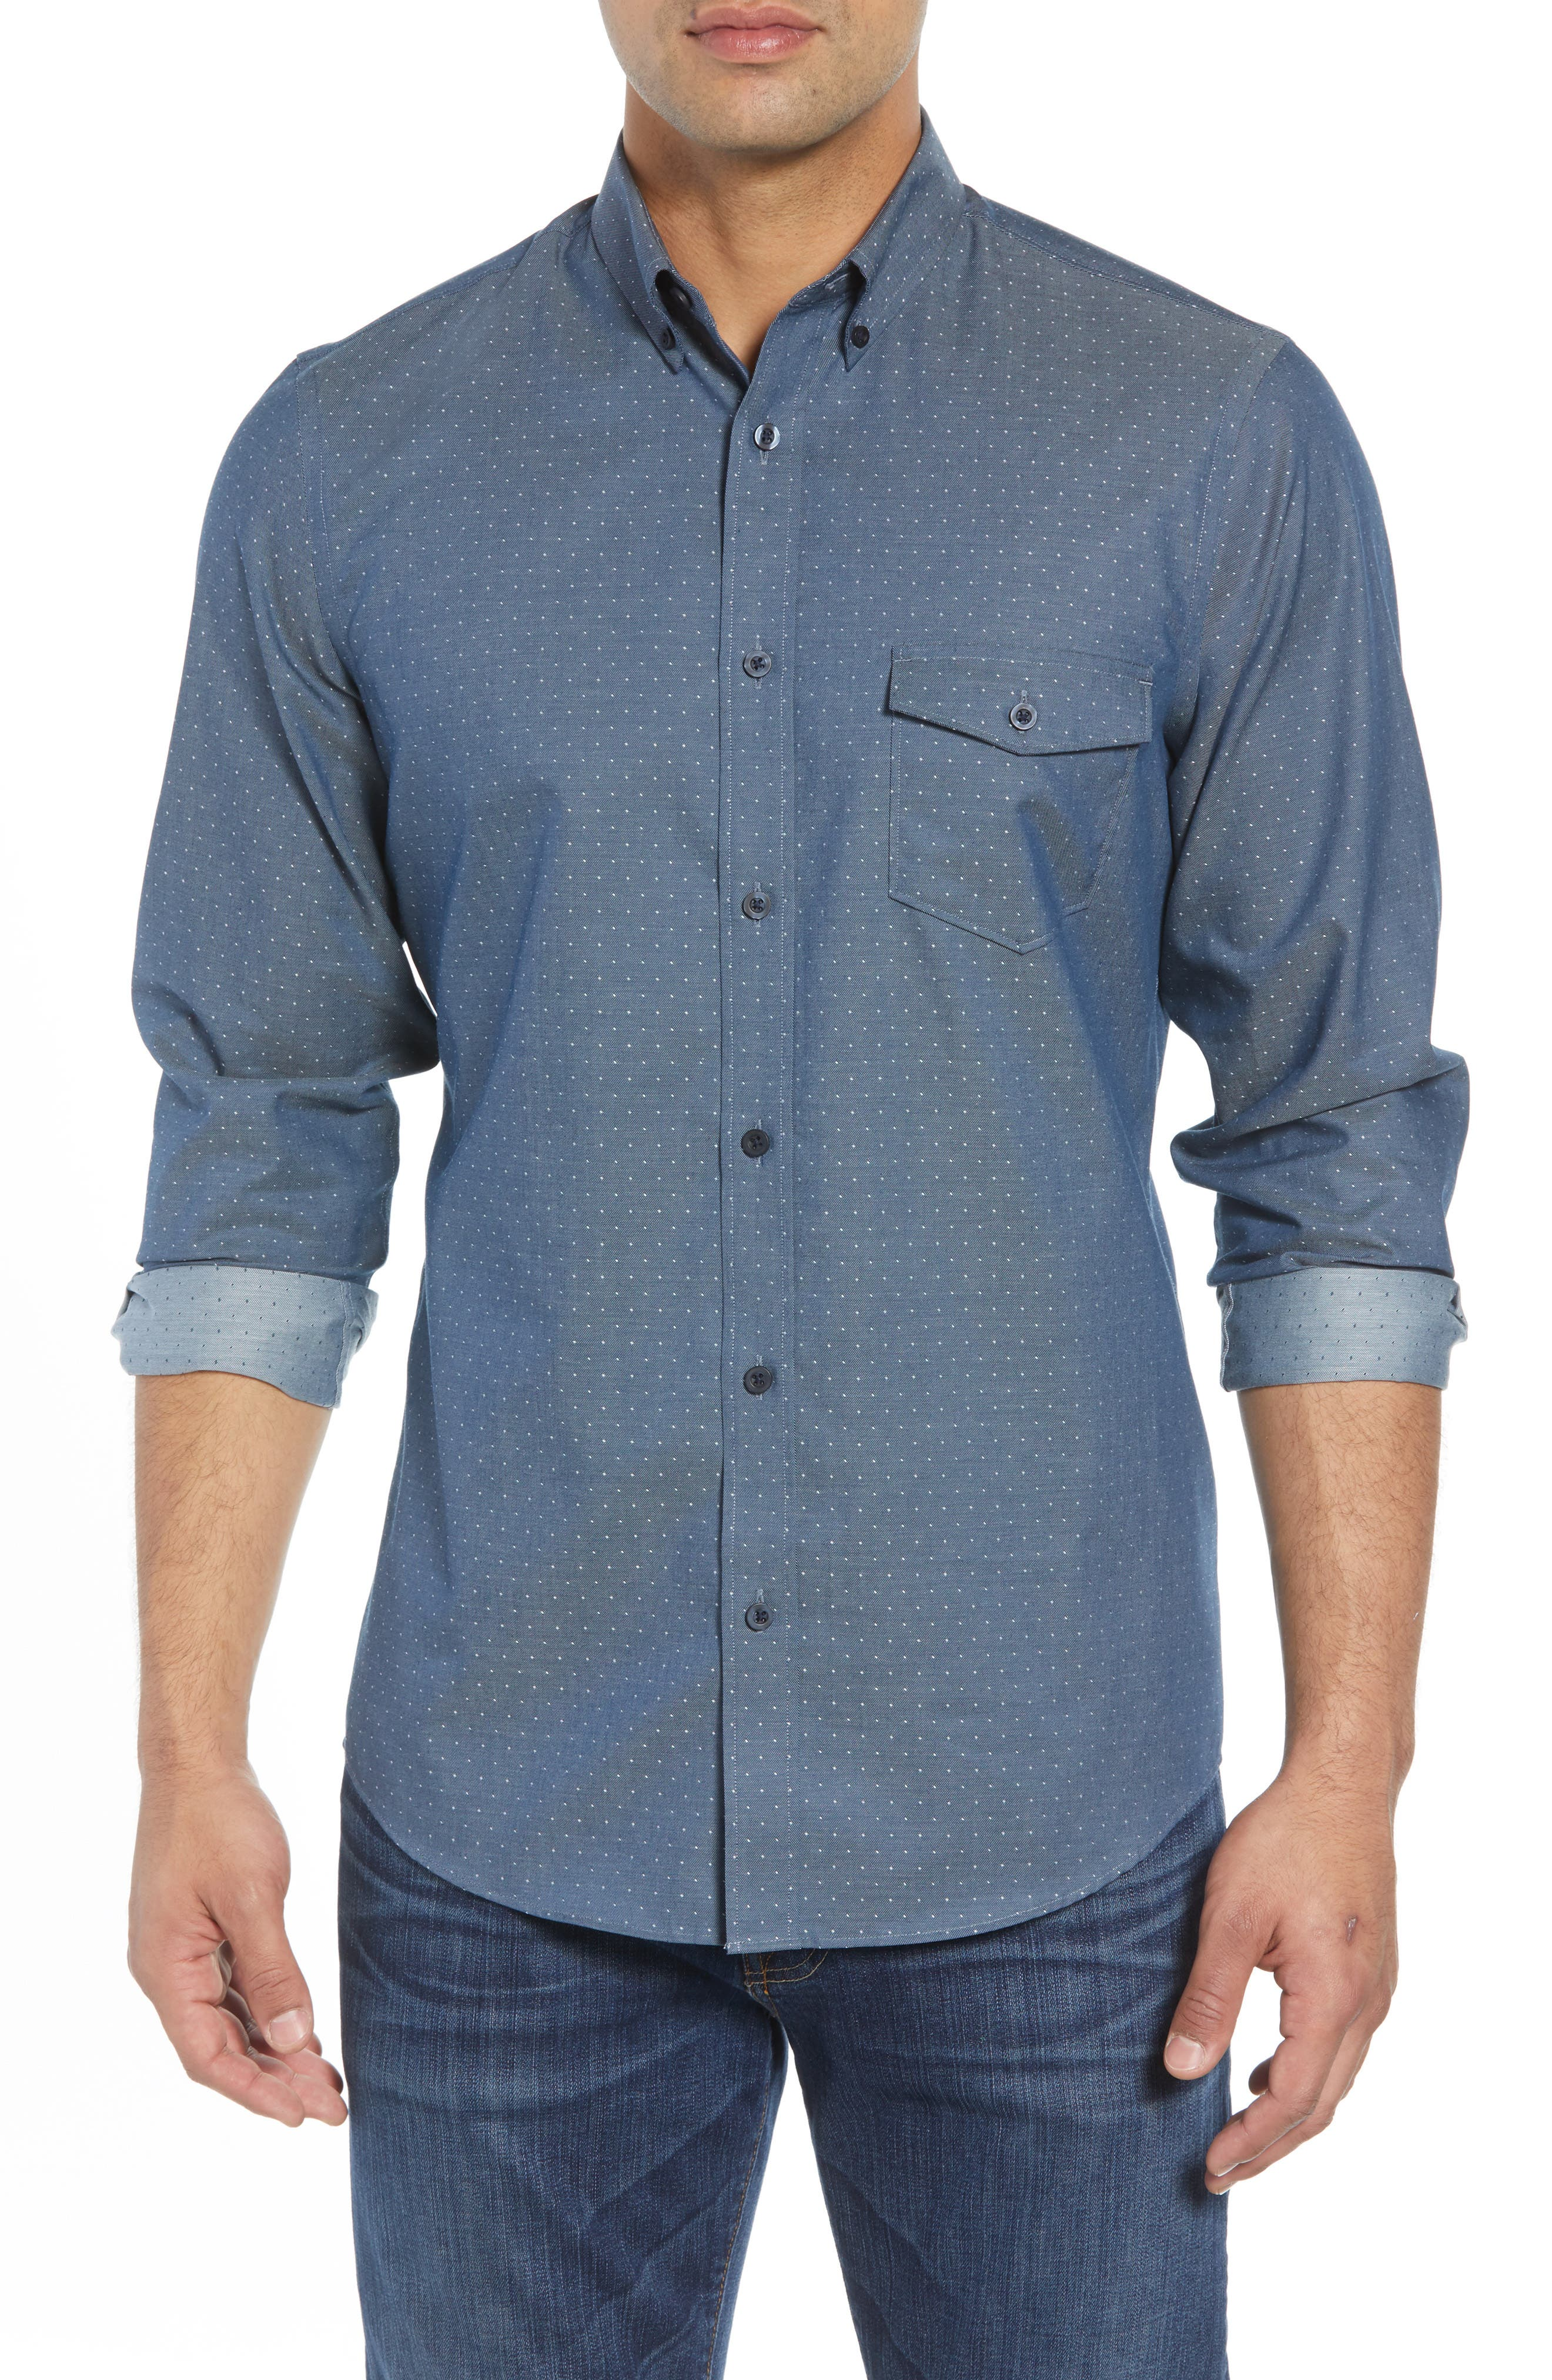 Regular Fit Dobby No-Iron Sport Shirt,                             Main thumbnail 1, color,                             NAVY ARMADA CHAMBRAY DOBBY